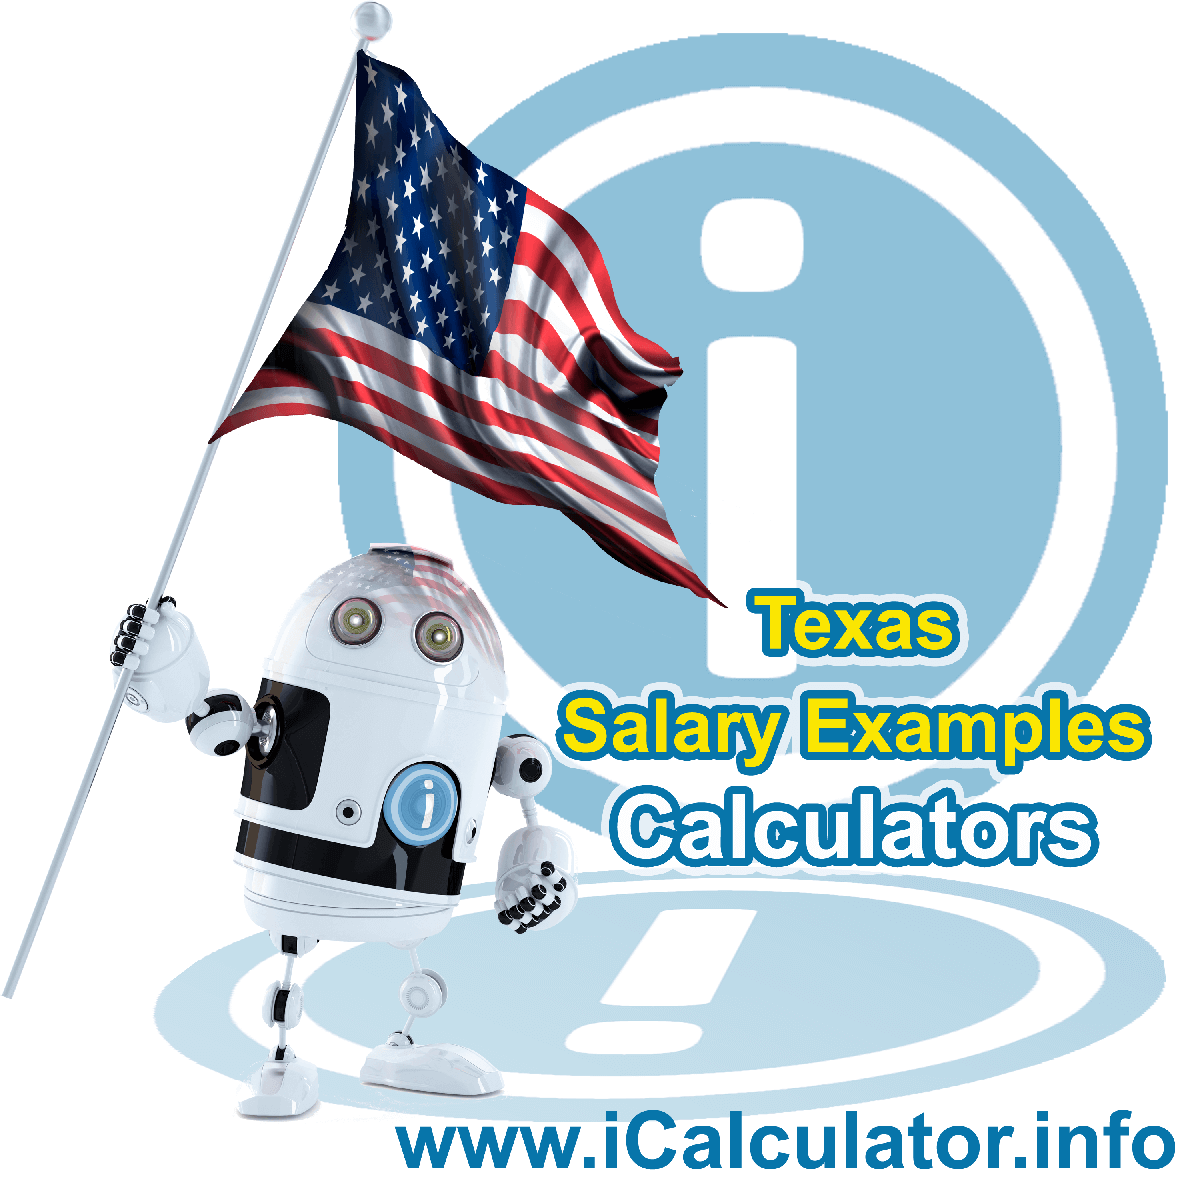 Texas Salary Example for $260.00 in 2020 | iCalculator | $260.00 salary example for employee and employer paying Texas State tincome taxes. Detailed salary after tax calculation including Texas State Tax, Federal State Tax, Medicare Deductions, Social Security, Capital Gains and other income tax and salary deductions complete with supporting Texas state tax tables